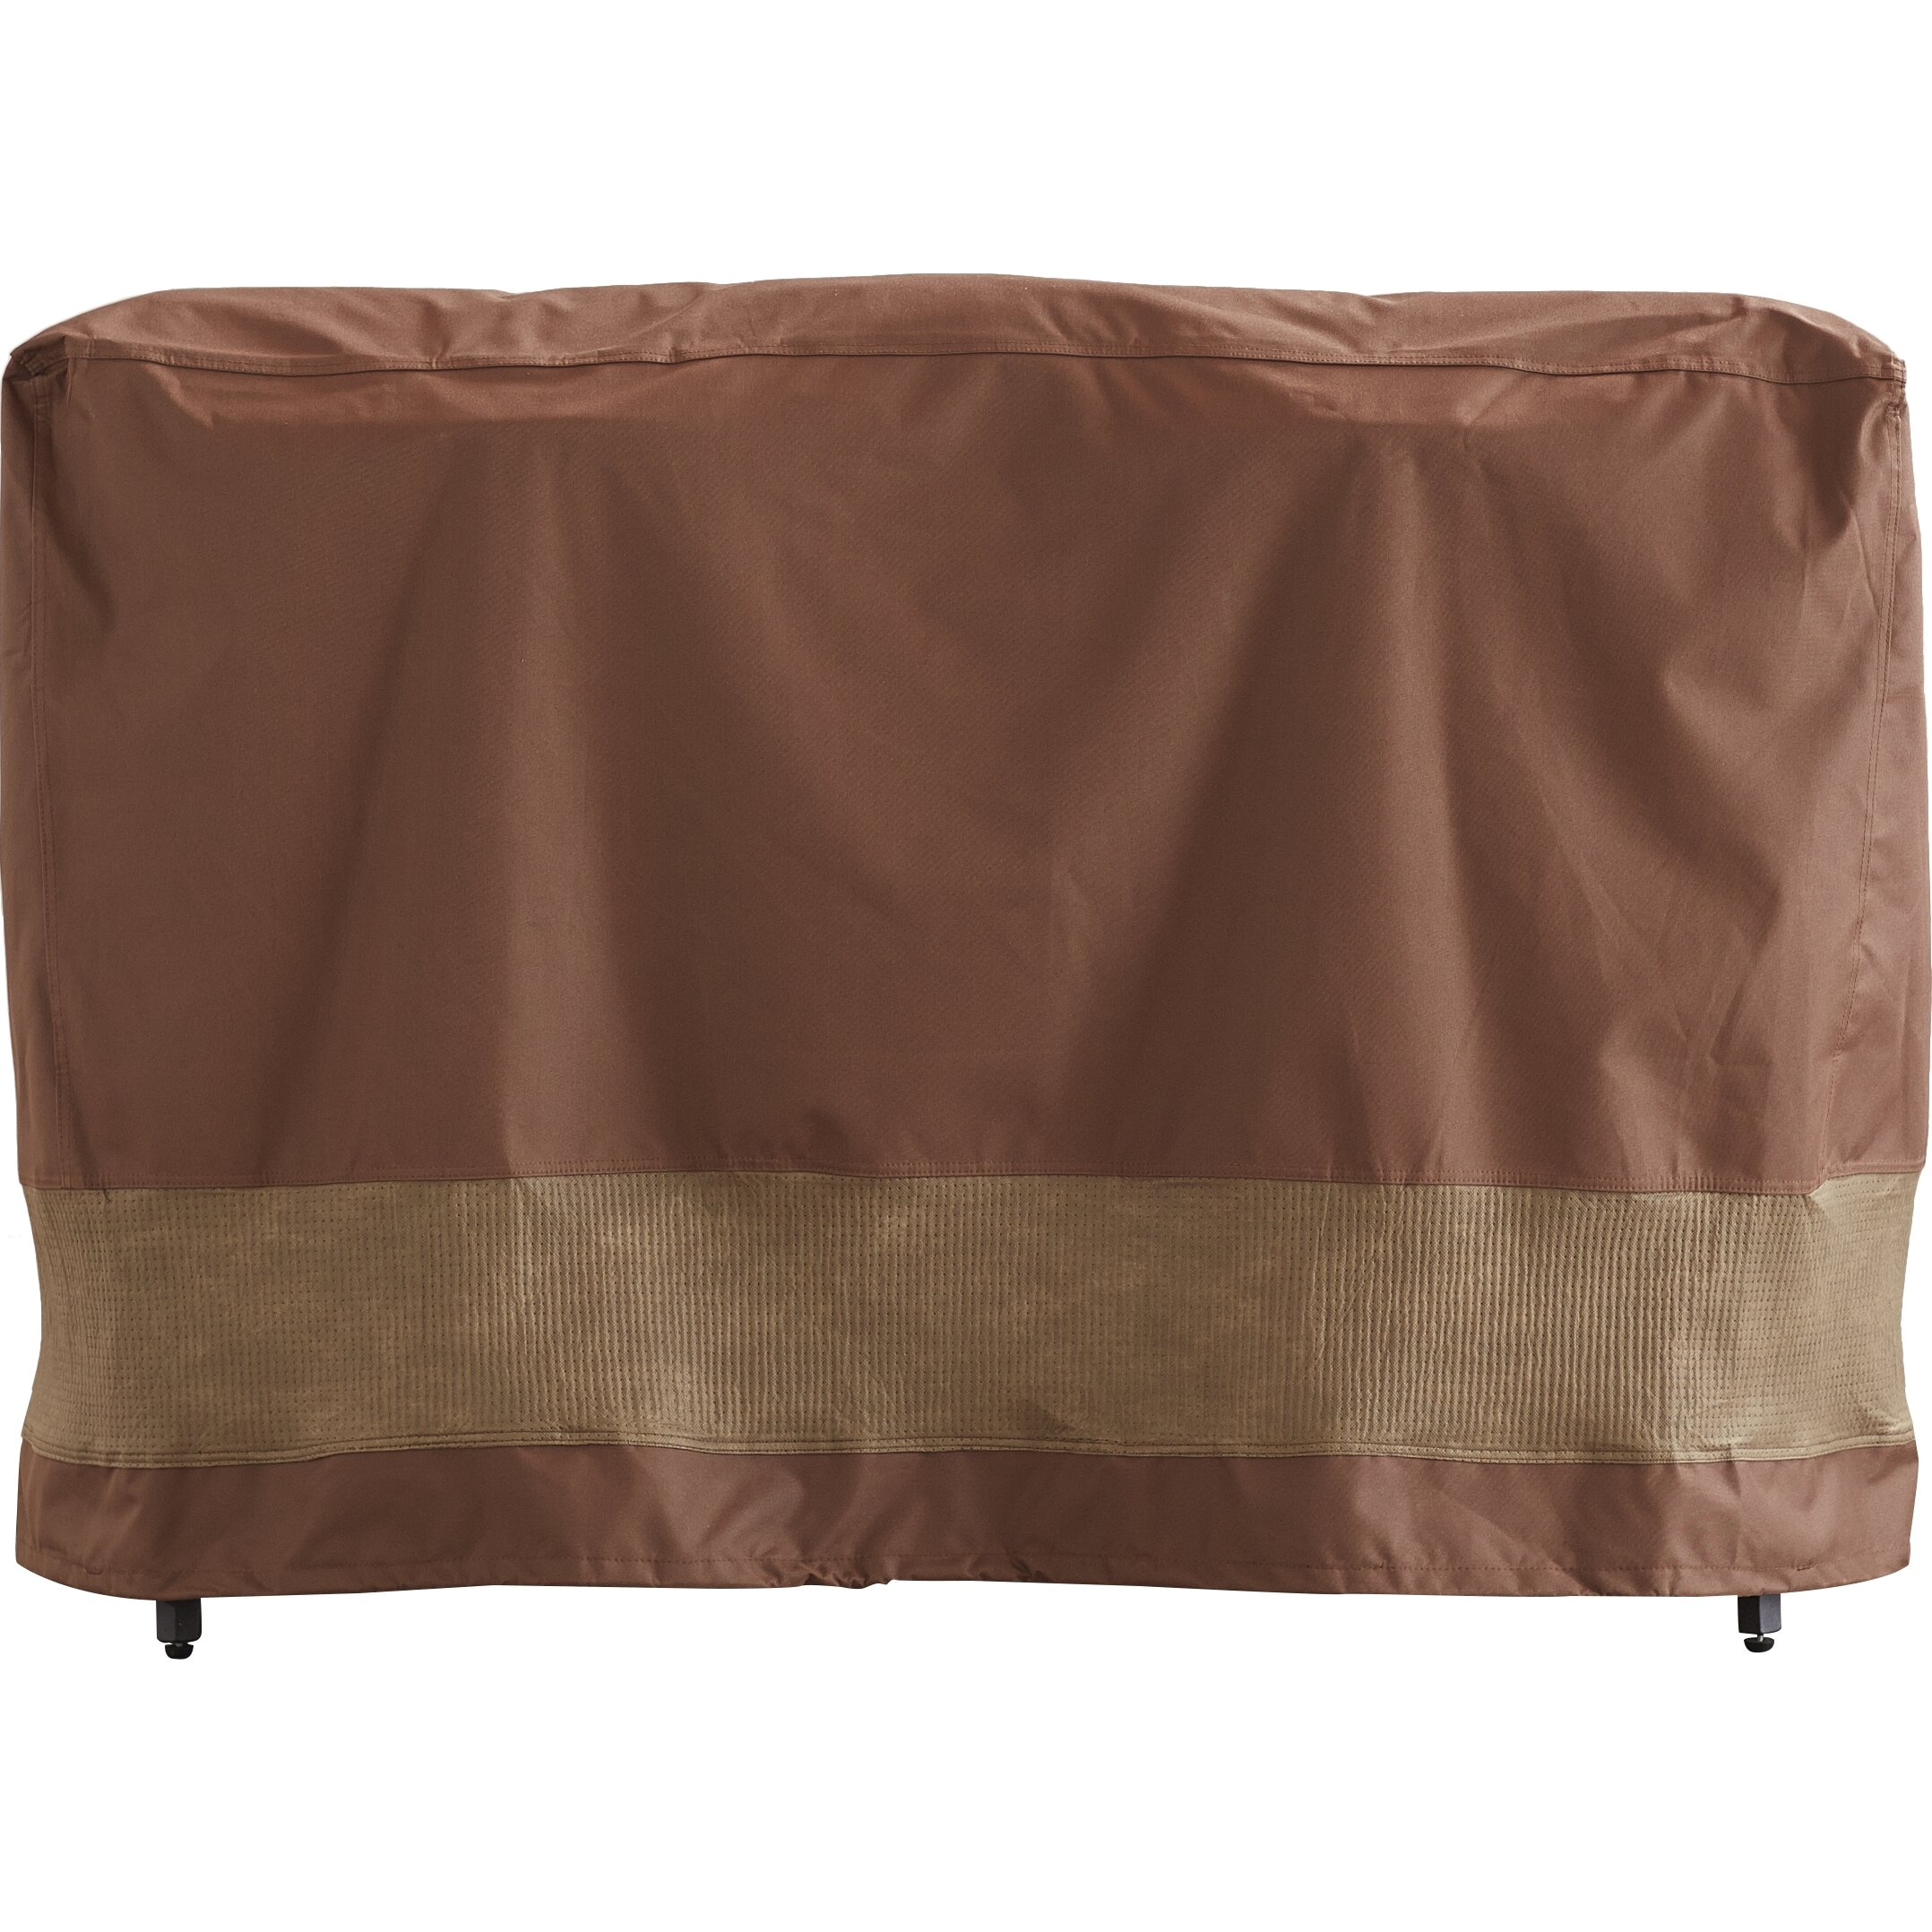 Duck Covers Ultimate Patio Loveseat Cover Reviews Wayfair